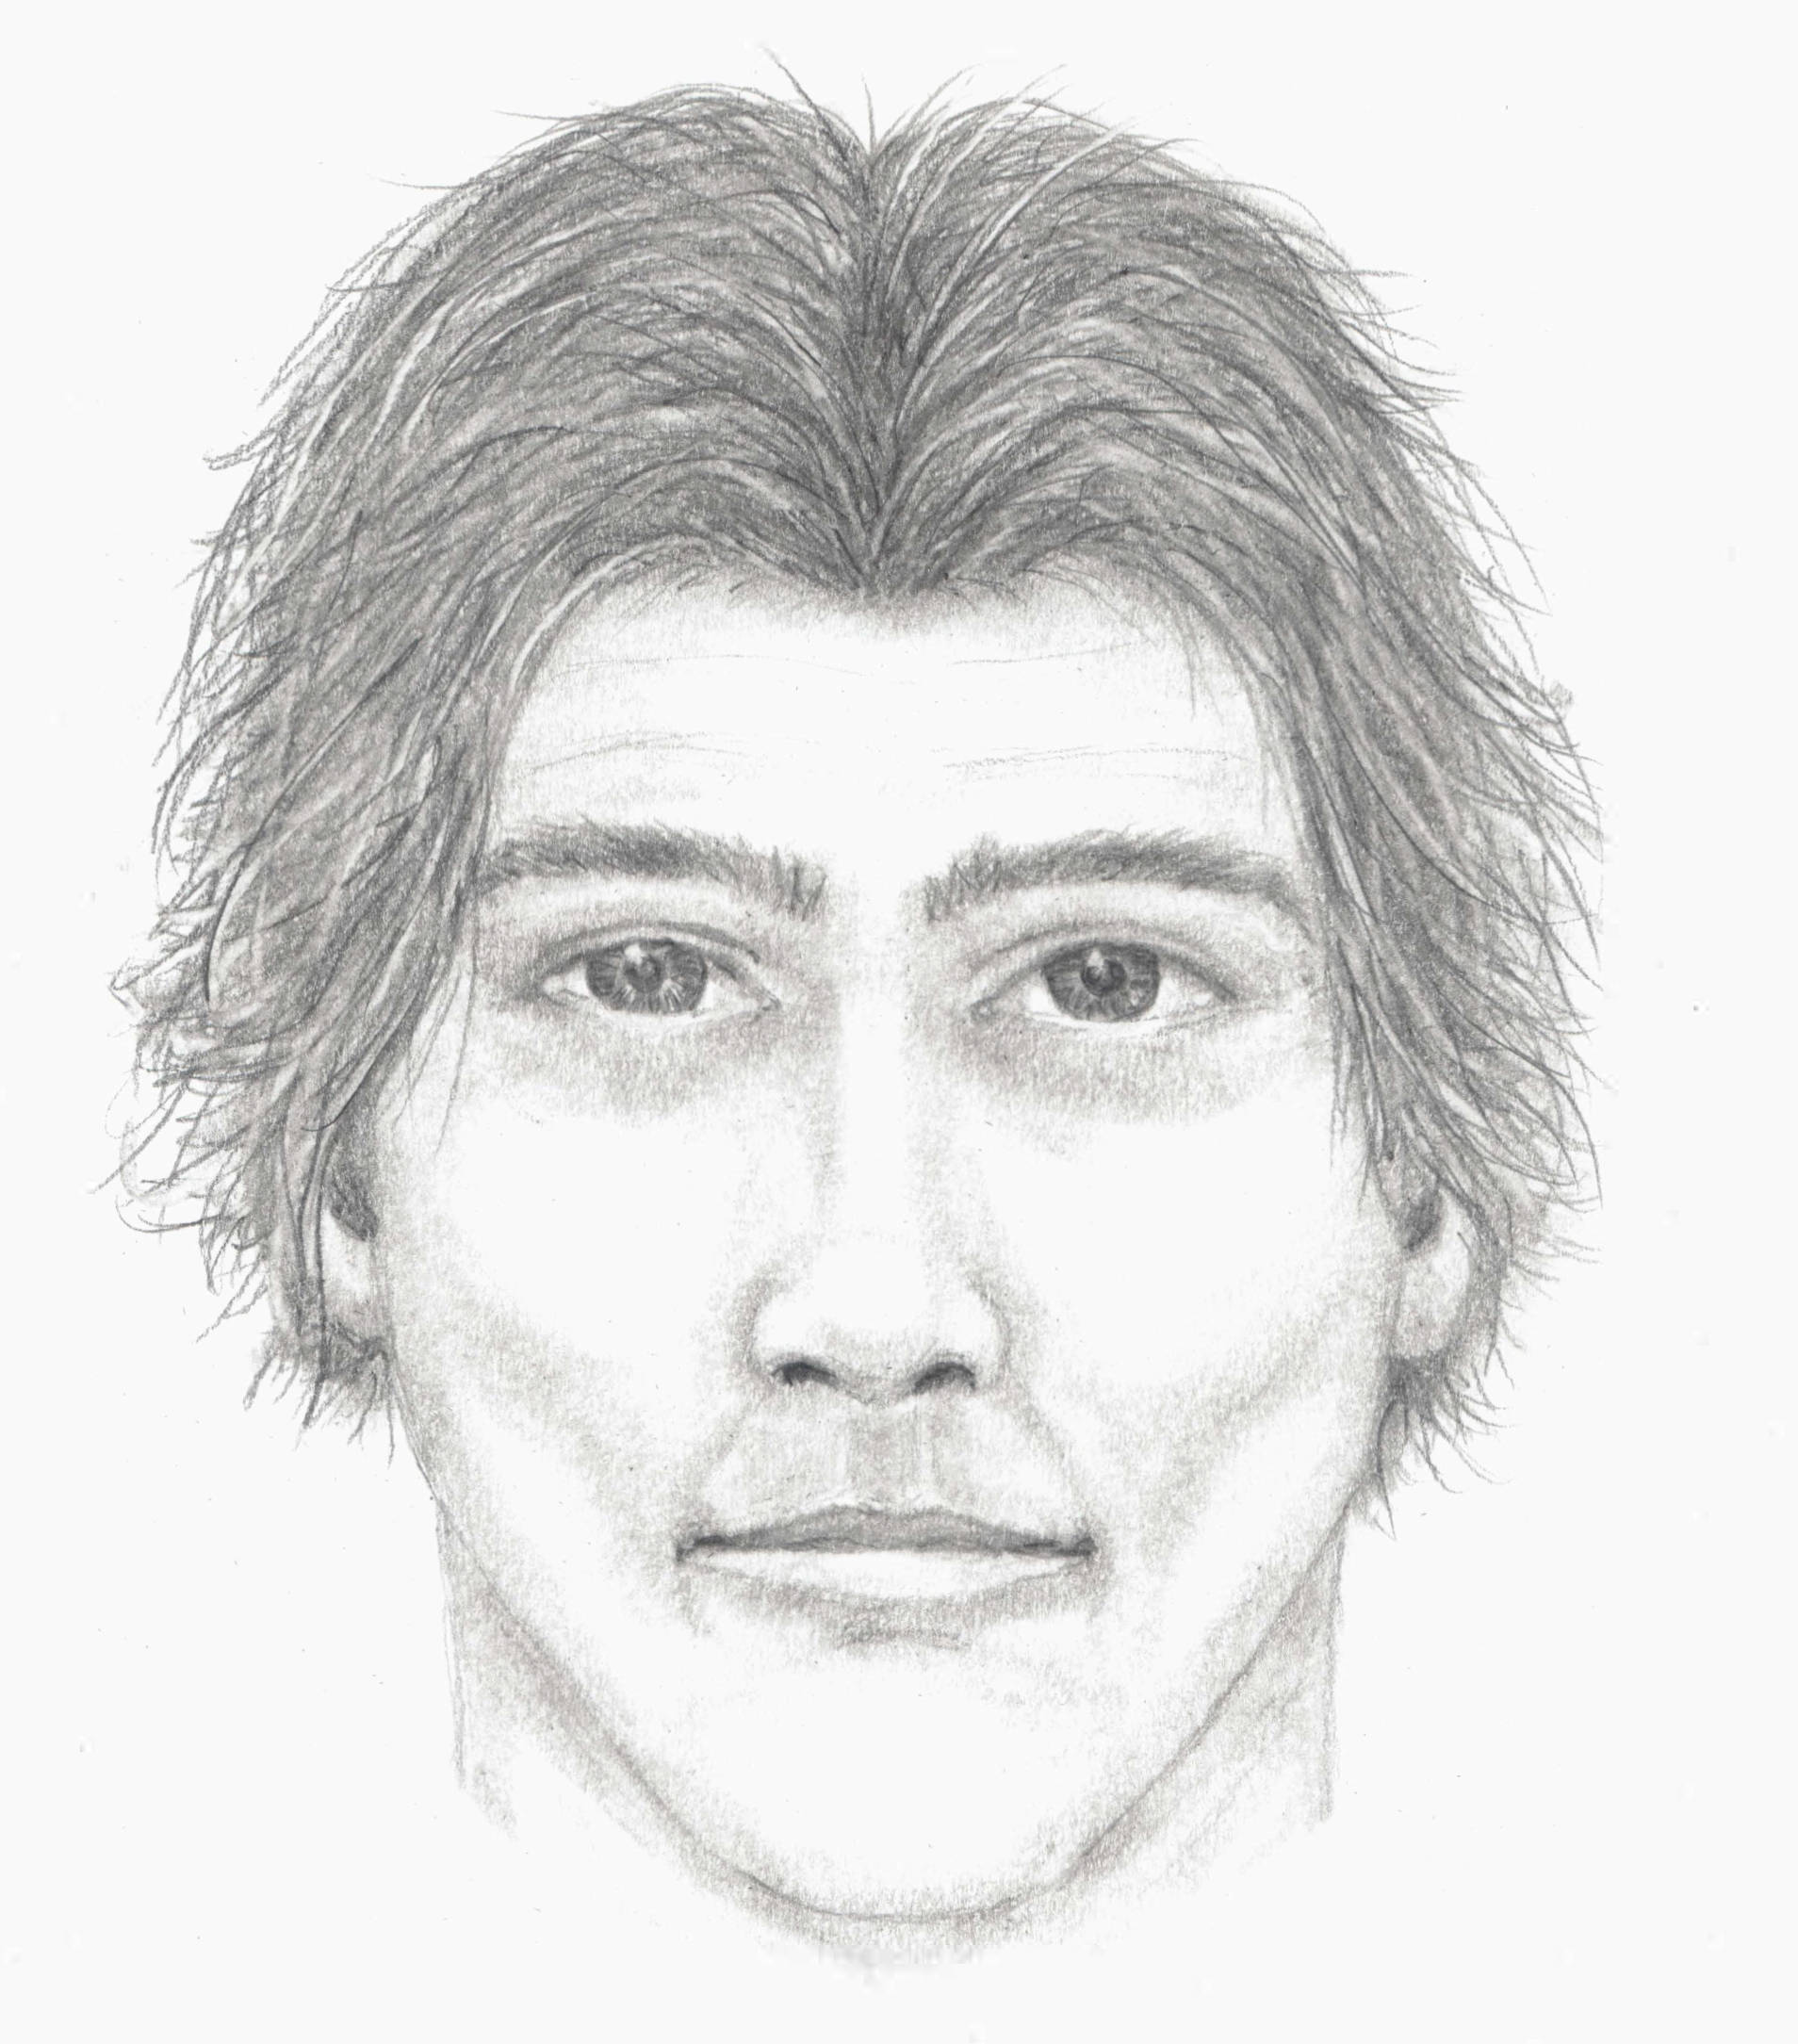 Sketch of sexual assault suspect released by Surrey RCMP on Monday, Dec. 7.